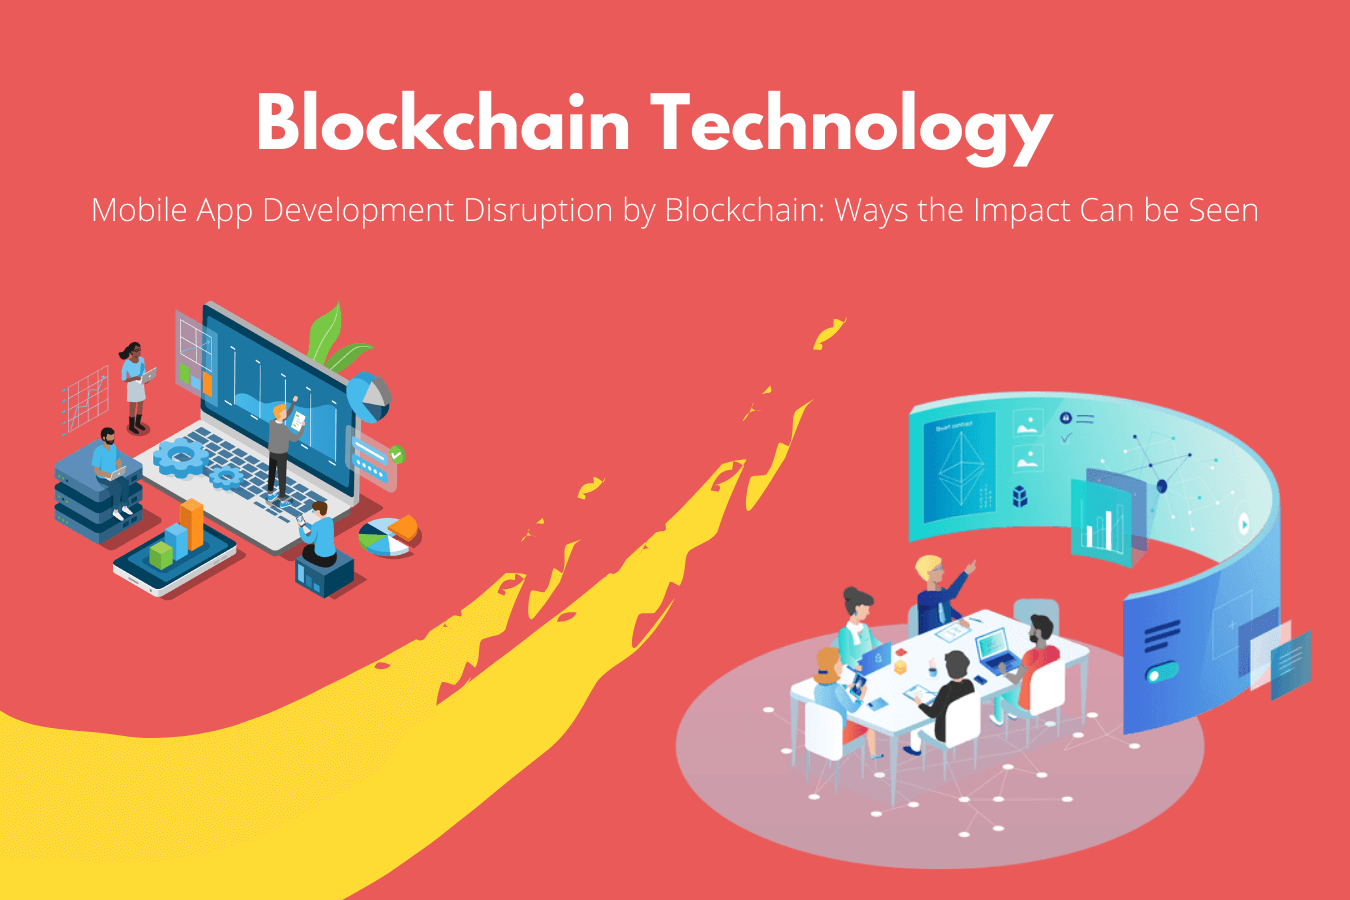 Mobile App Development Disruption by Blockchain: Ways the Impact Can be Seen